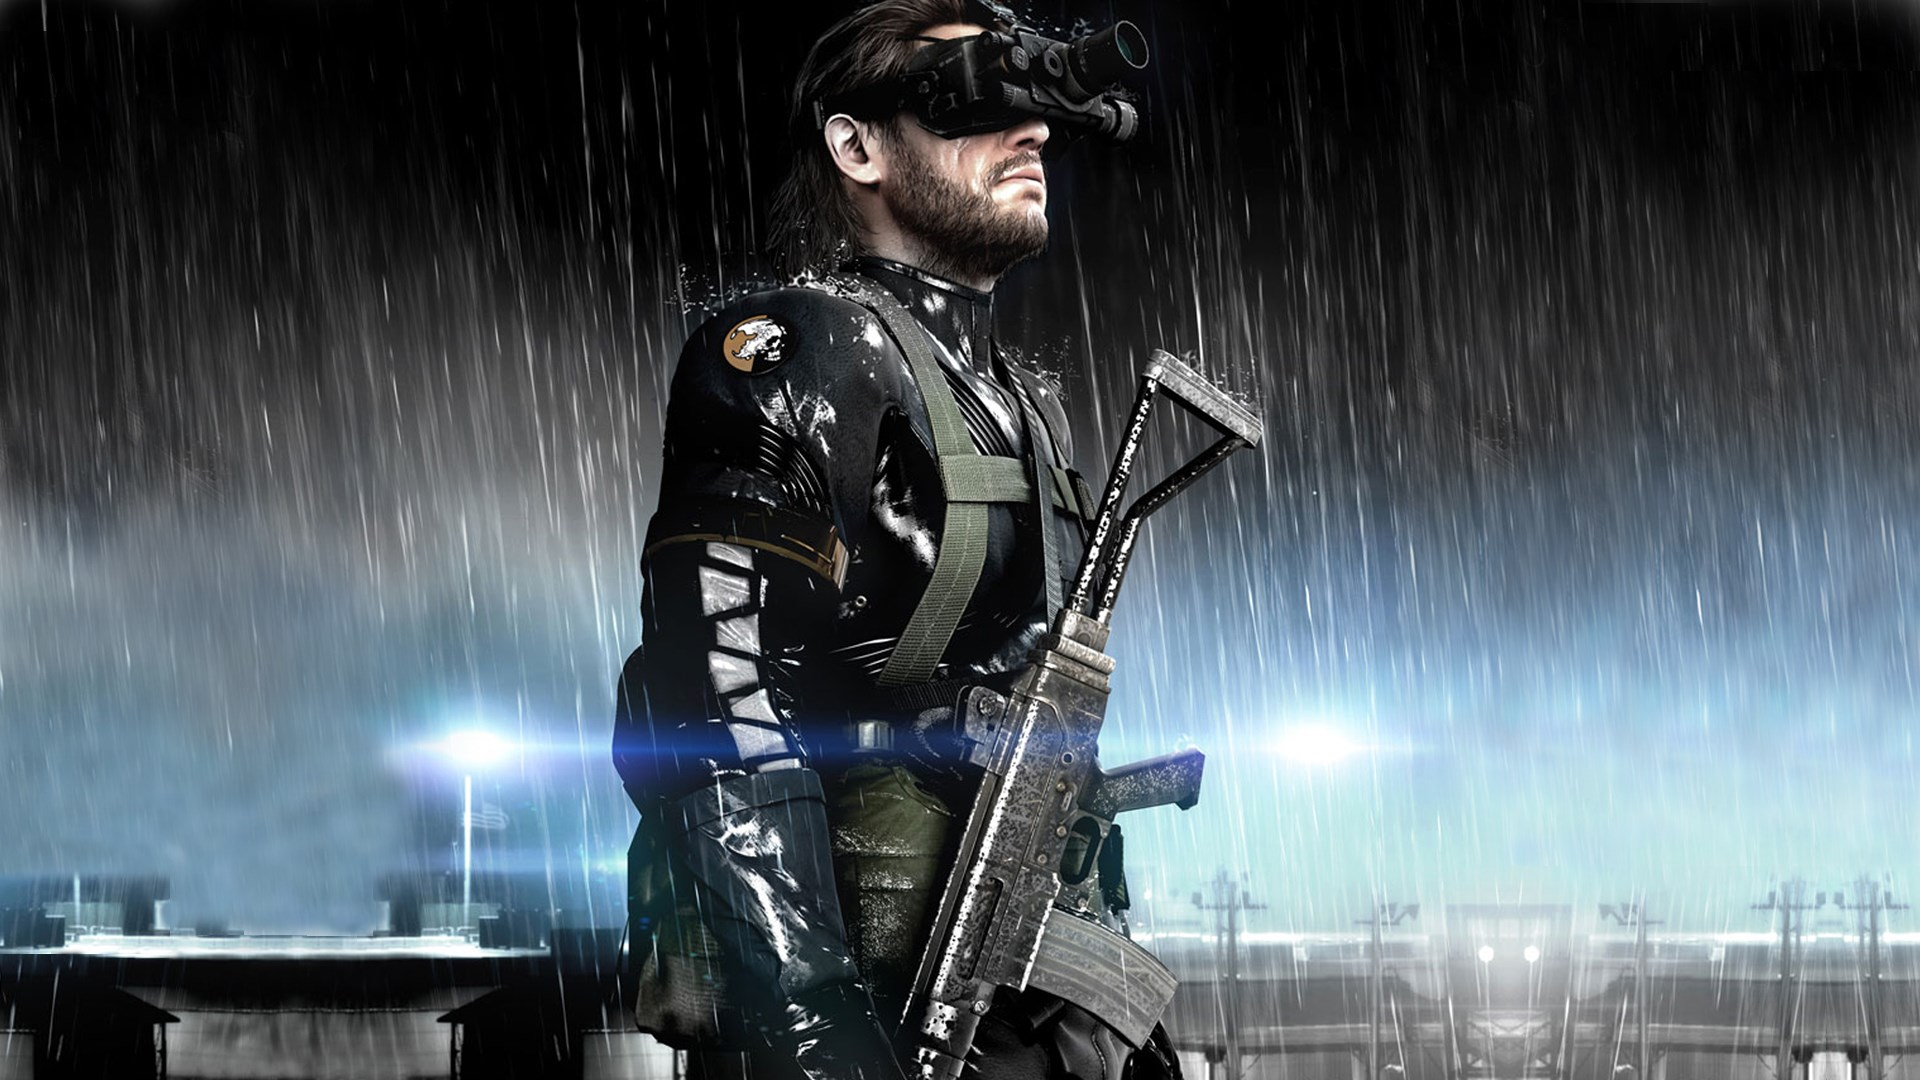 1920x1080-Image-for-Desktop-metal-gear-solid-v-ground-zeroes-wallpaper-wp380854